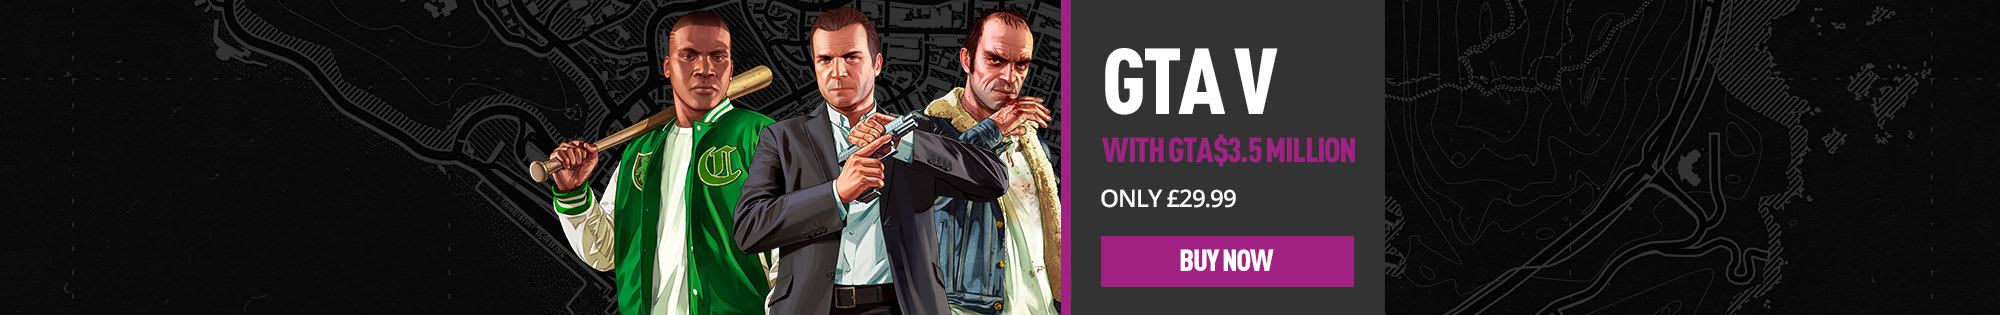 Grand Theft Auto V with $3.5 million Shark Card - Homepage banner